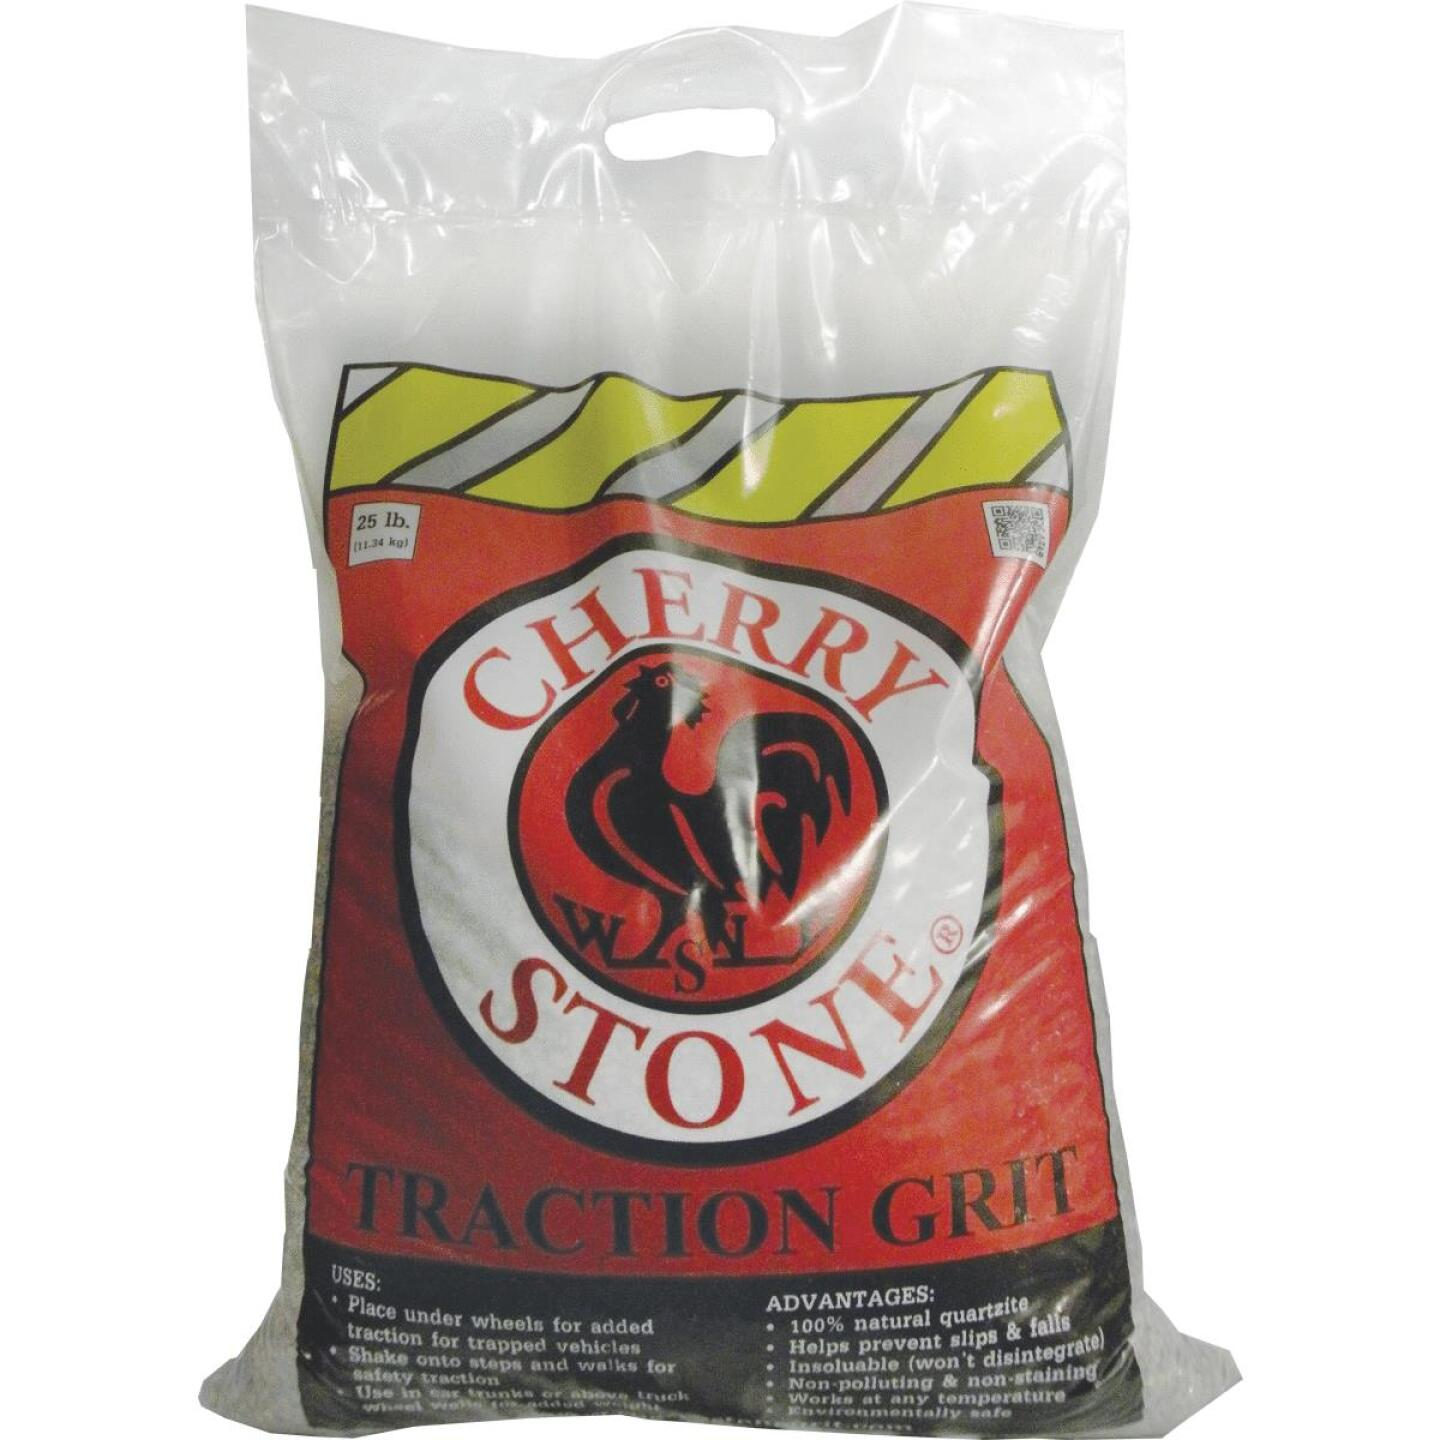 Cherry Stone 25 Lb. Ice Traction Grit Image 1